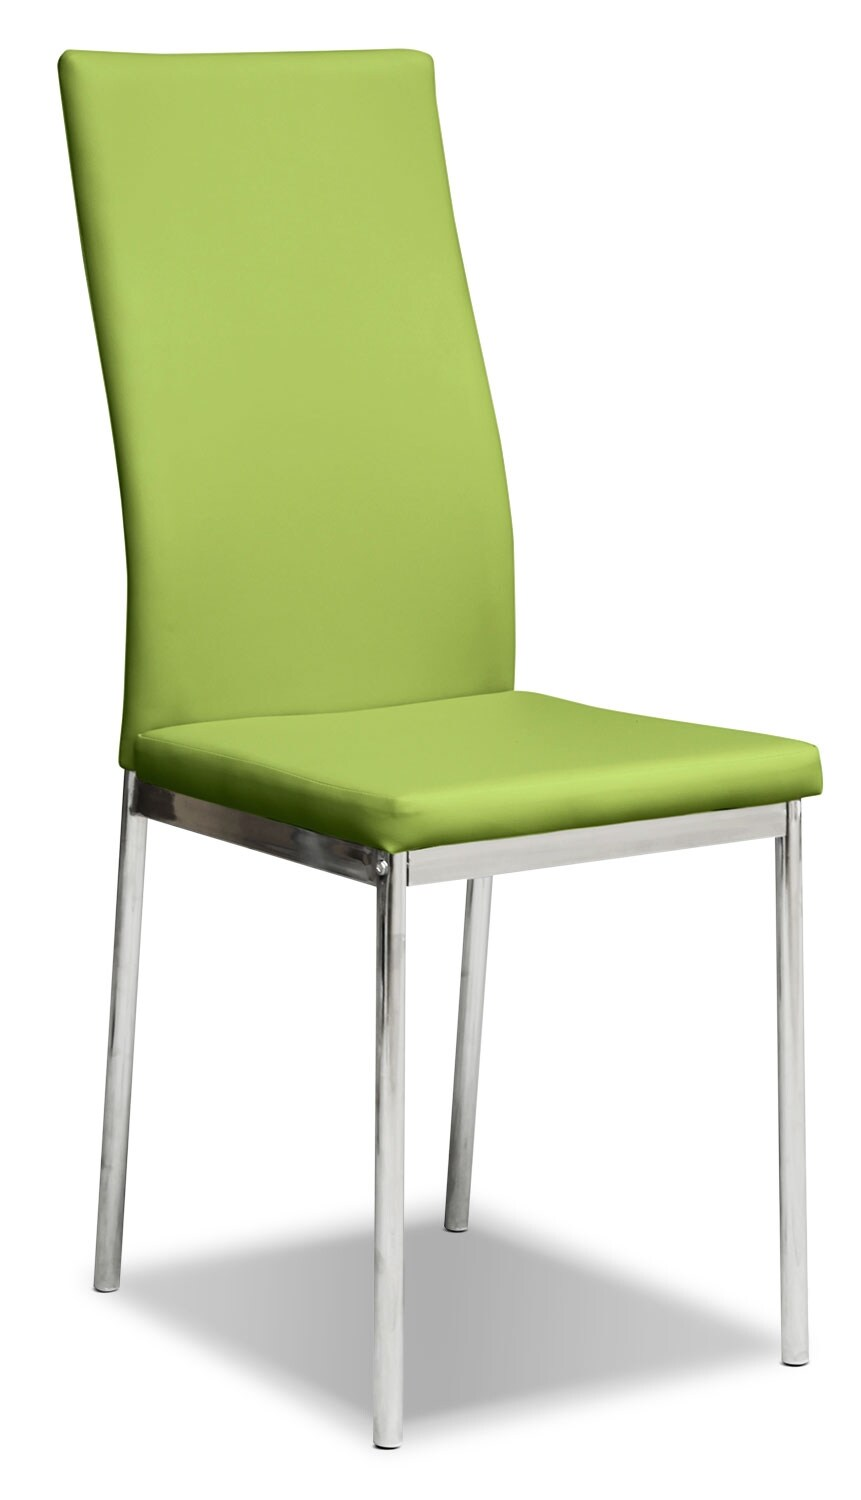 Koda Dining Chair - Green